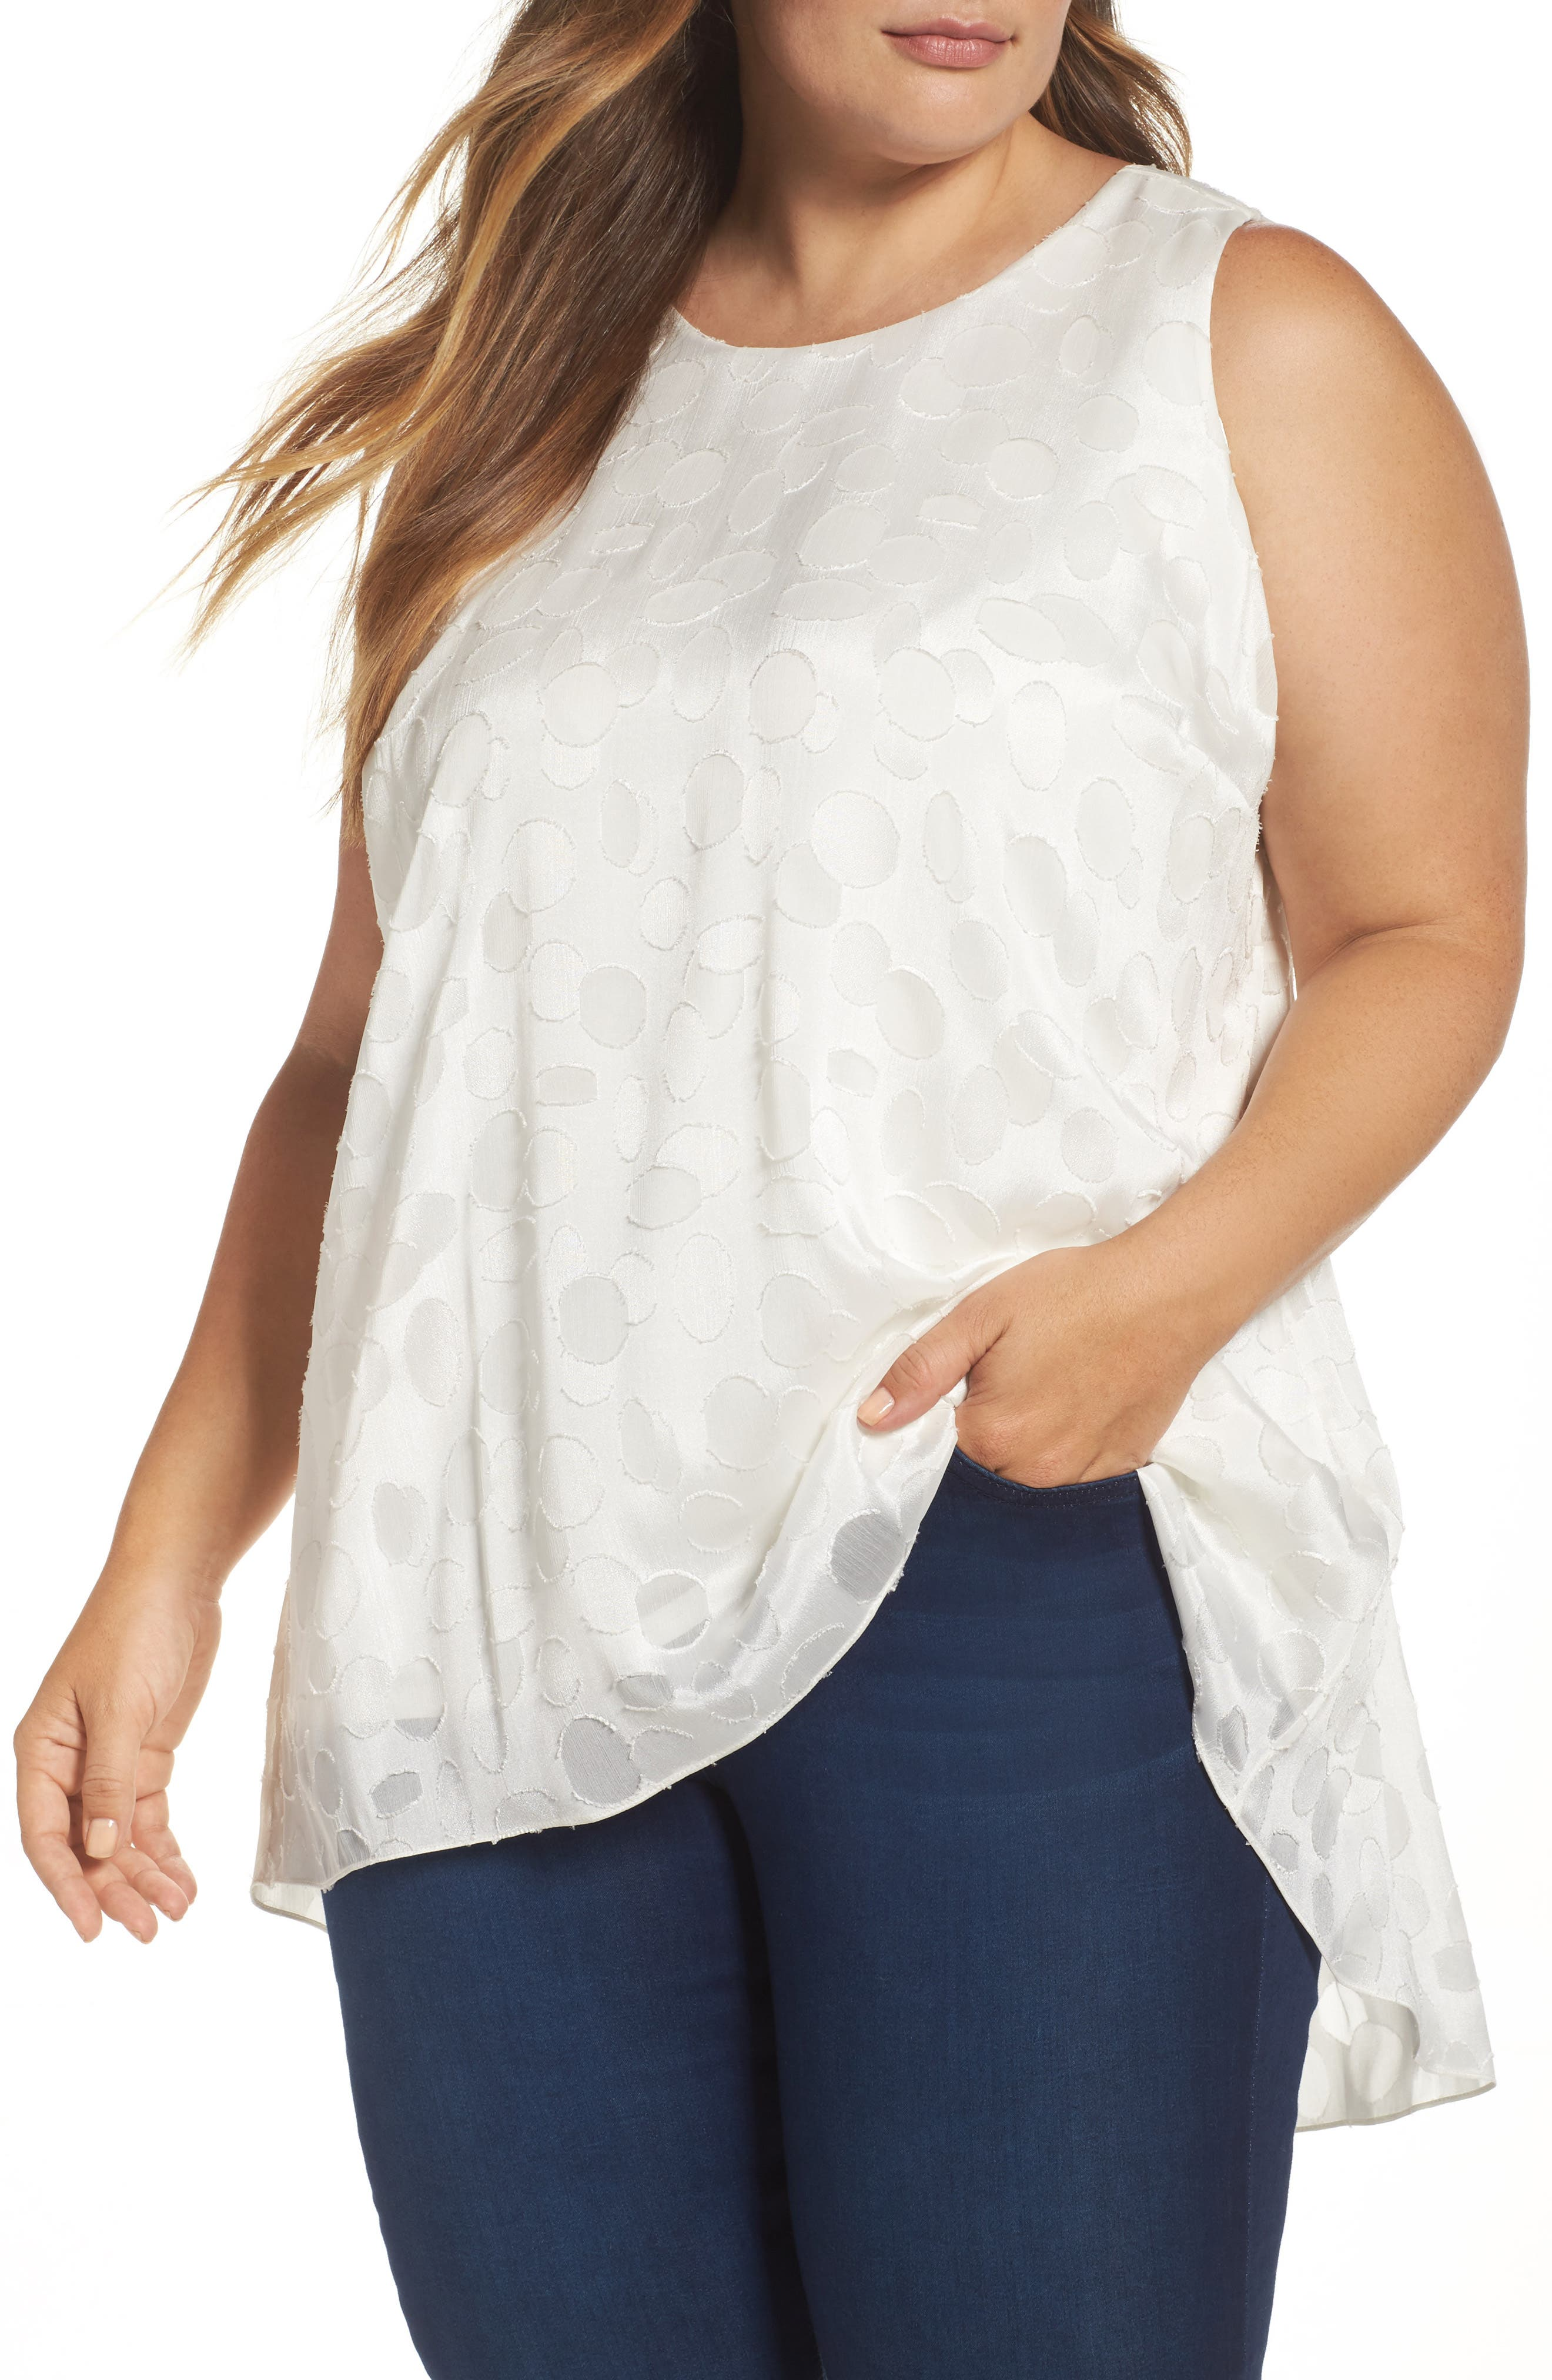 Vince Camuto Sheer Clipped Dot Sleeveless Top (Plus Size)